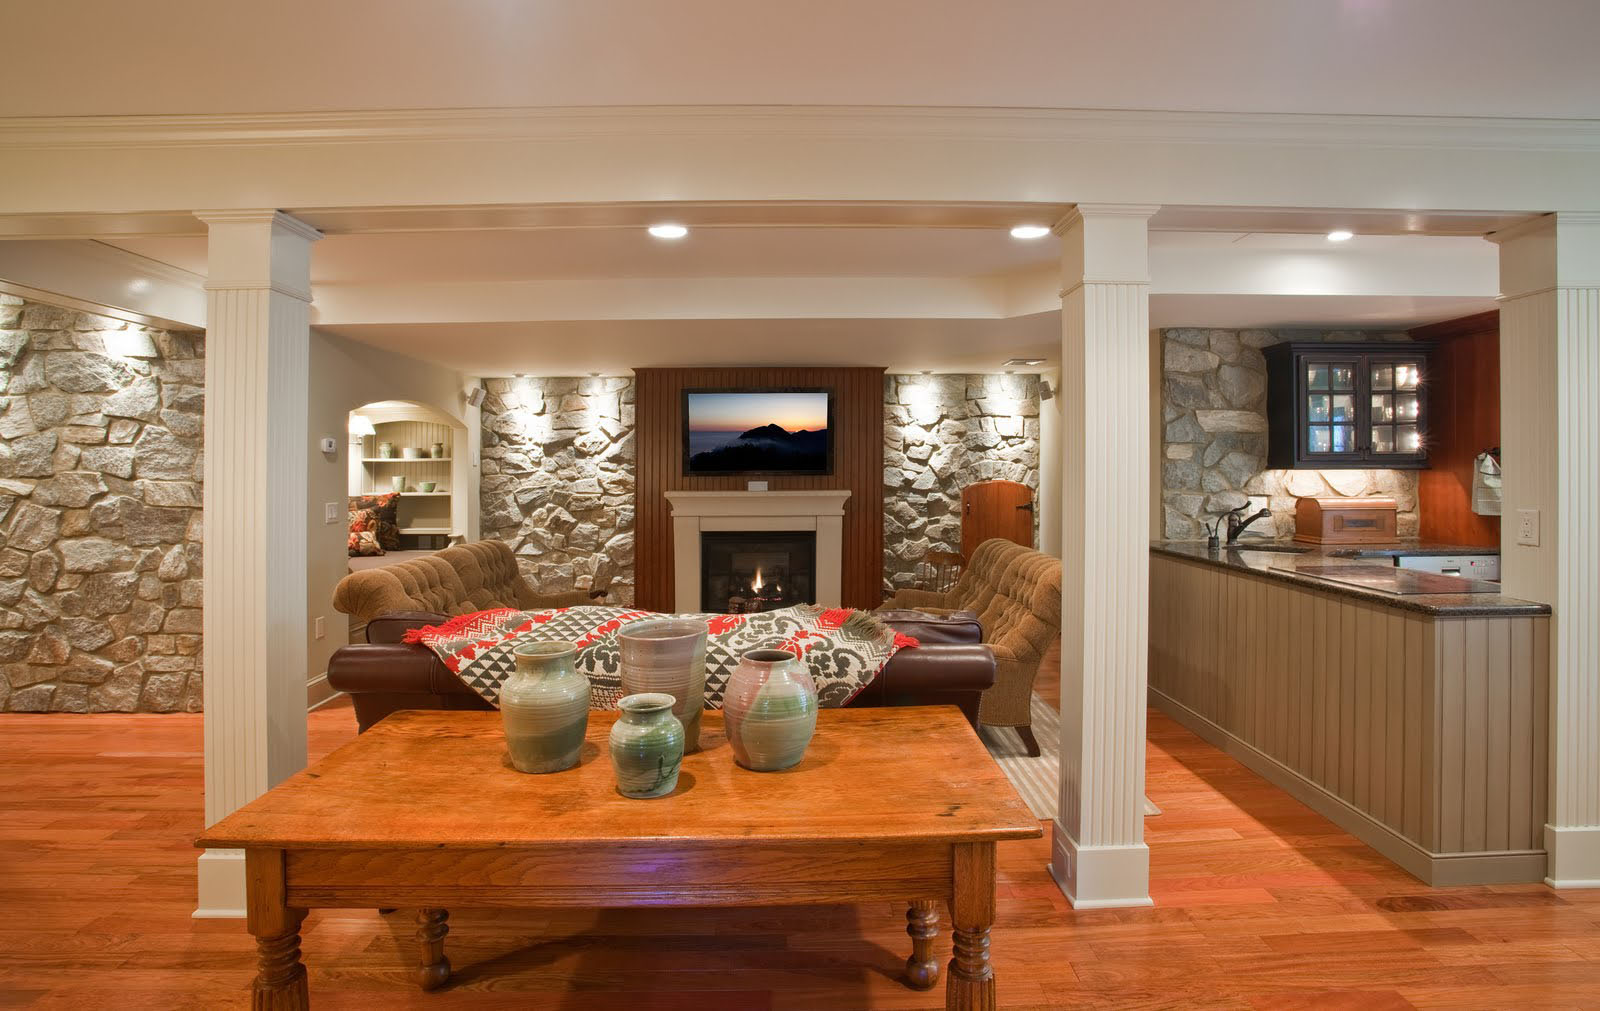 Basement Renovation With Rustic Stone Walls